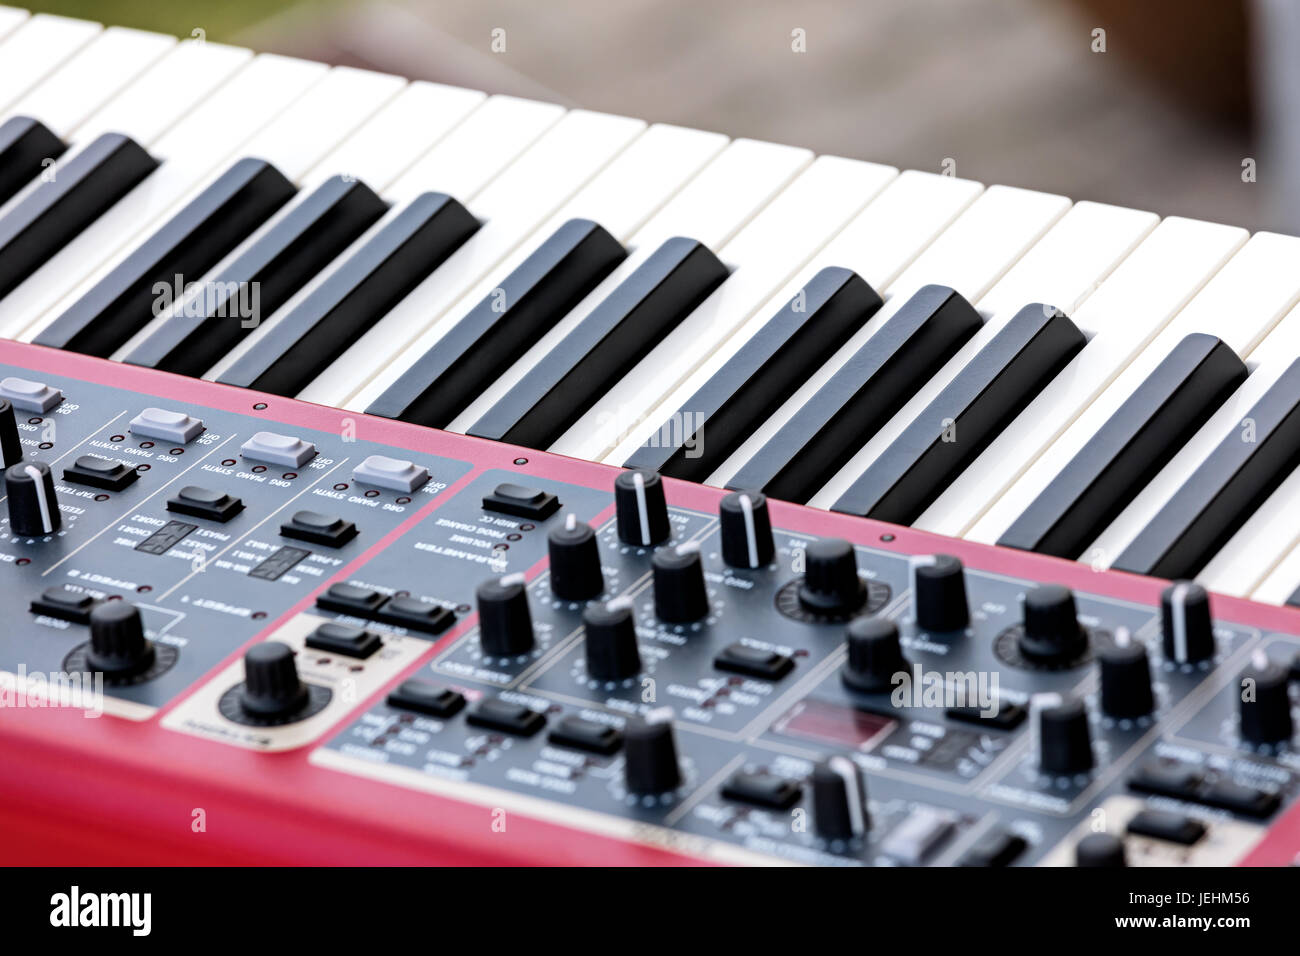 electronic synthesizer with keys, midi controller volume fader, knobs and sliders - Stock Image